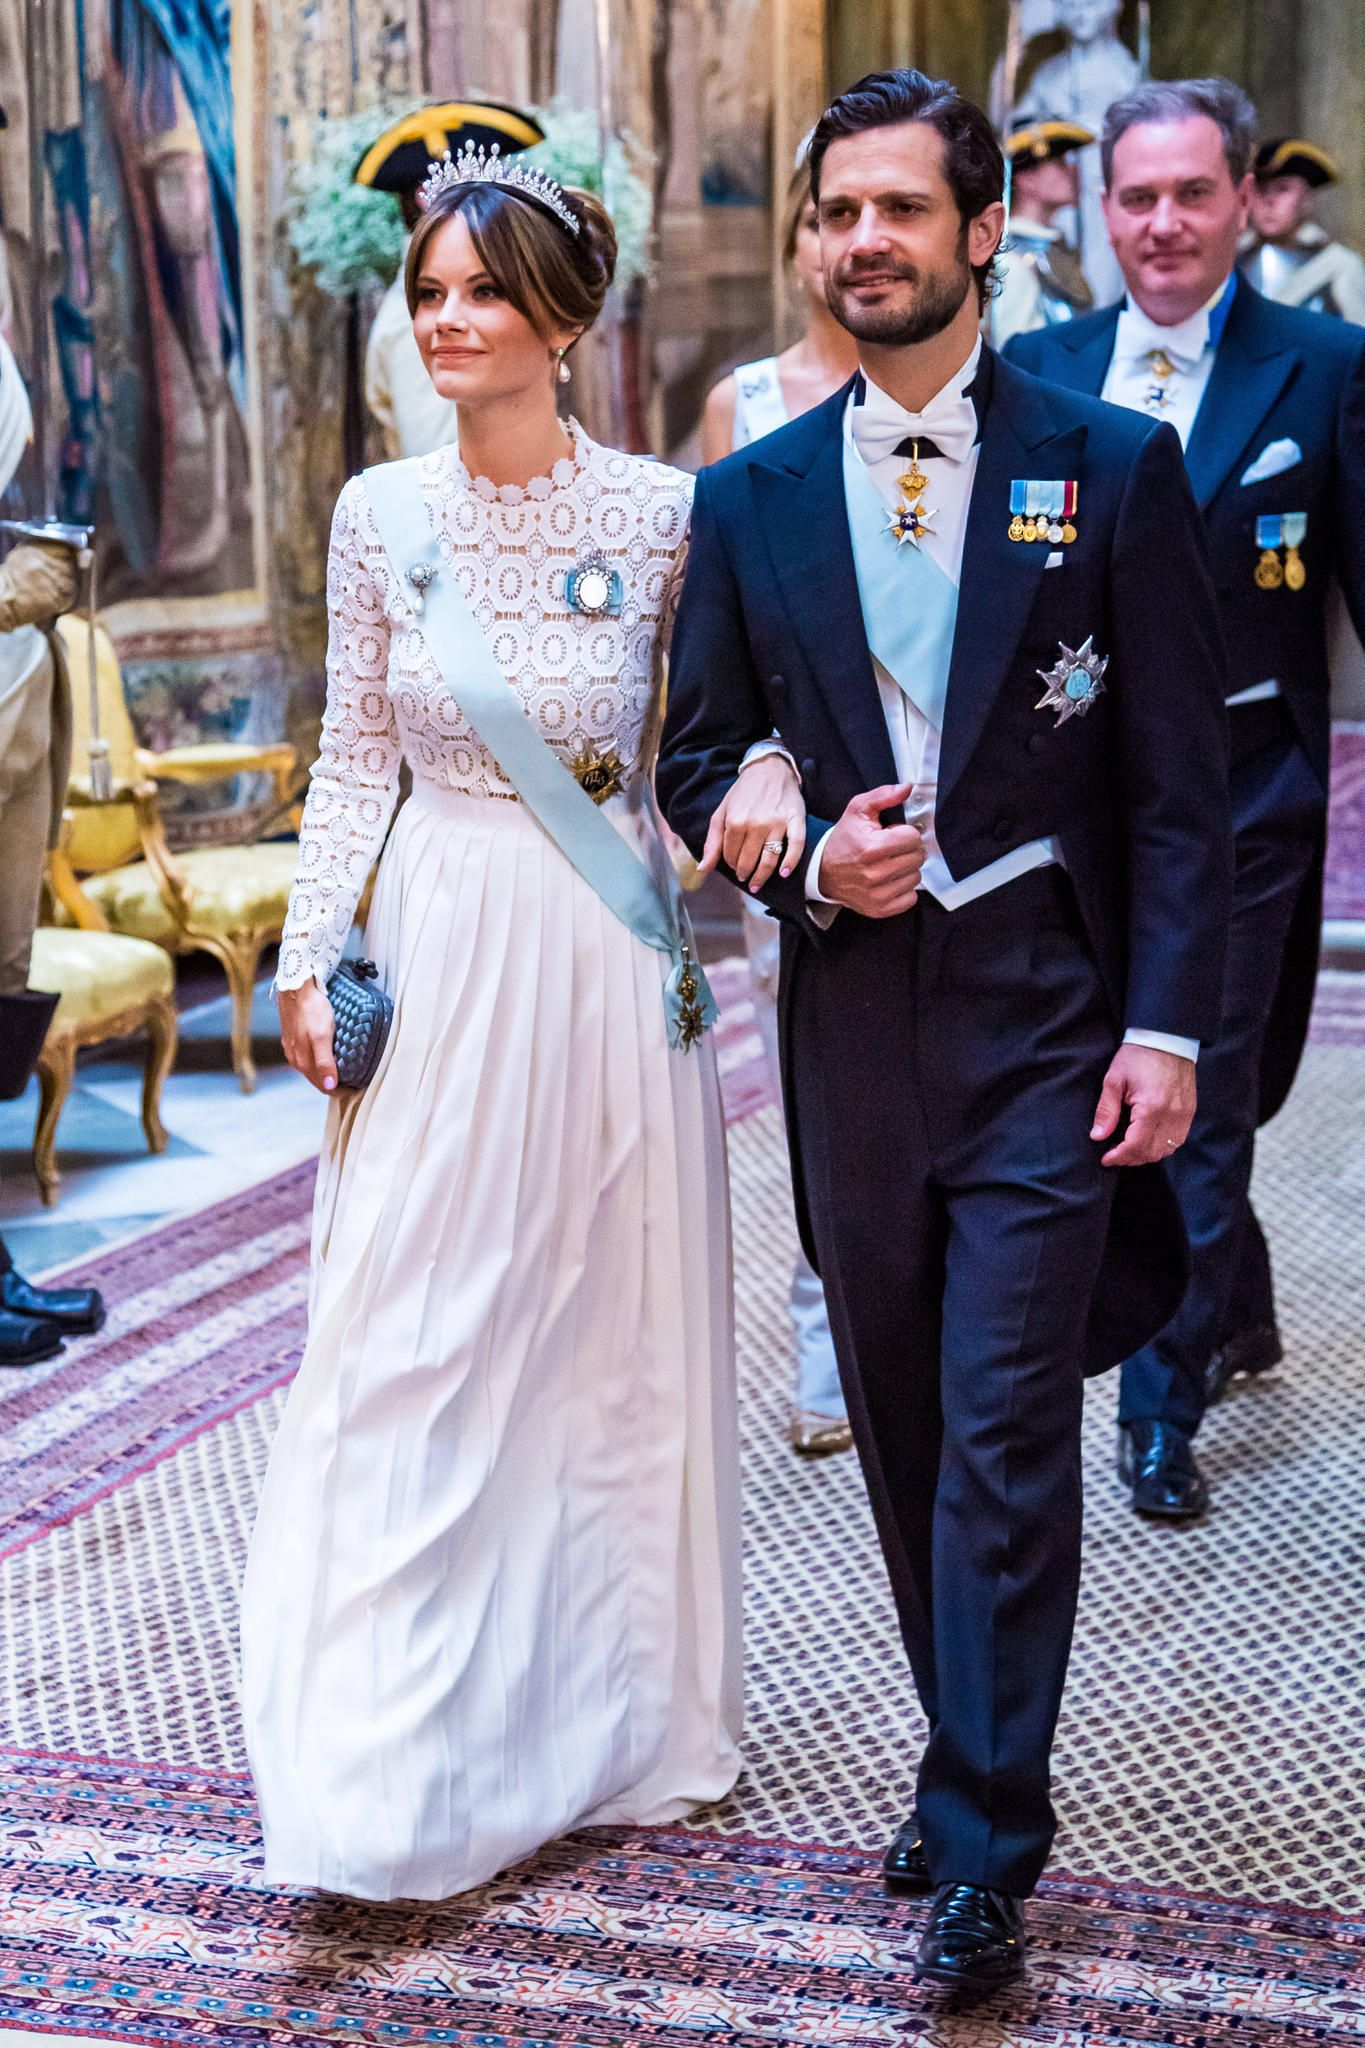 Prince Carl Philip And Princess Sofia Attend State Banquet For The President Of South Korea Royal Portraits Gallery Princess Sofia Of Sweden Princess Sofia Prince Carl Philip [ 2048 x 1365 Pixel ]